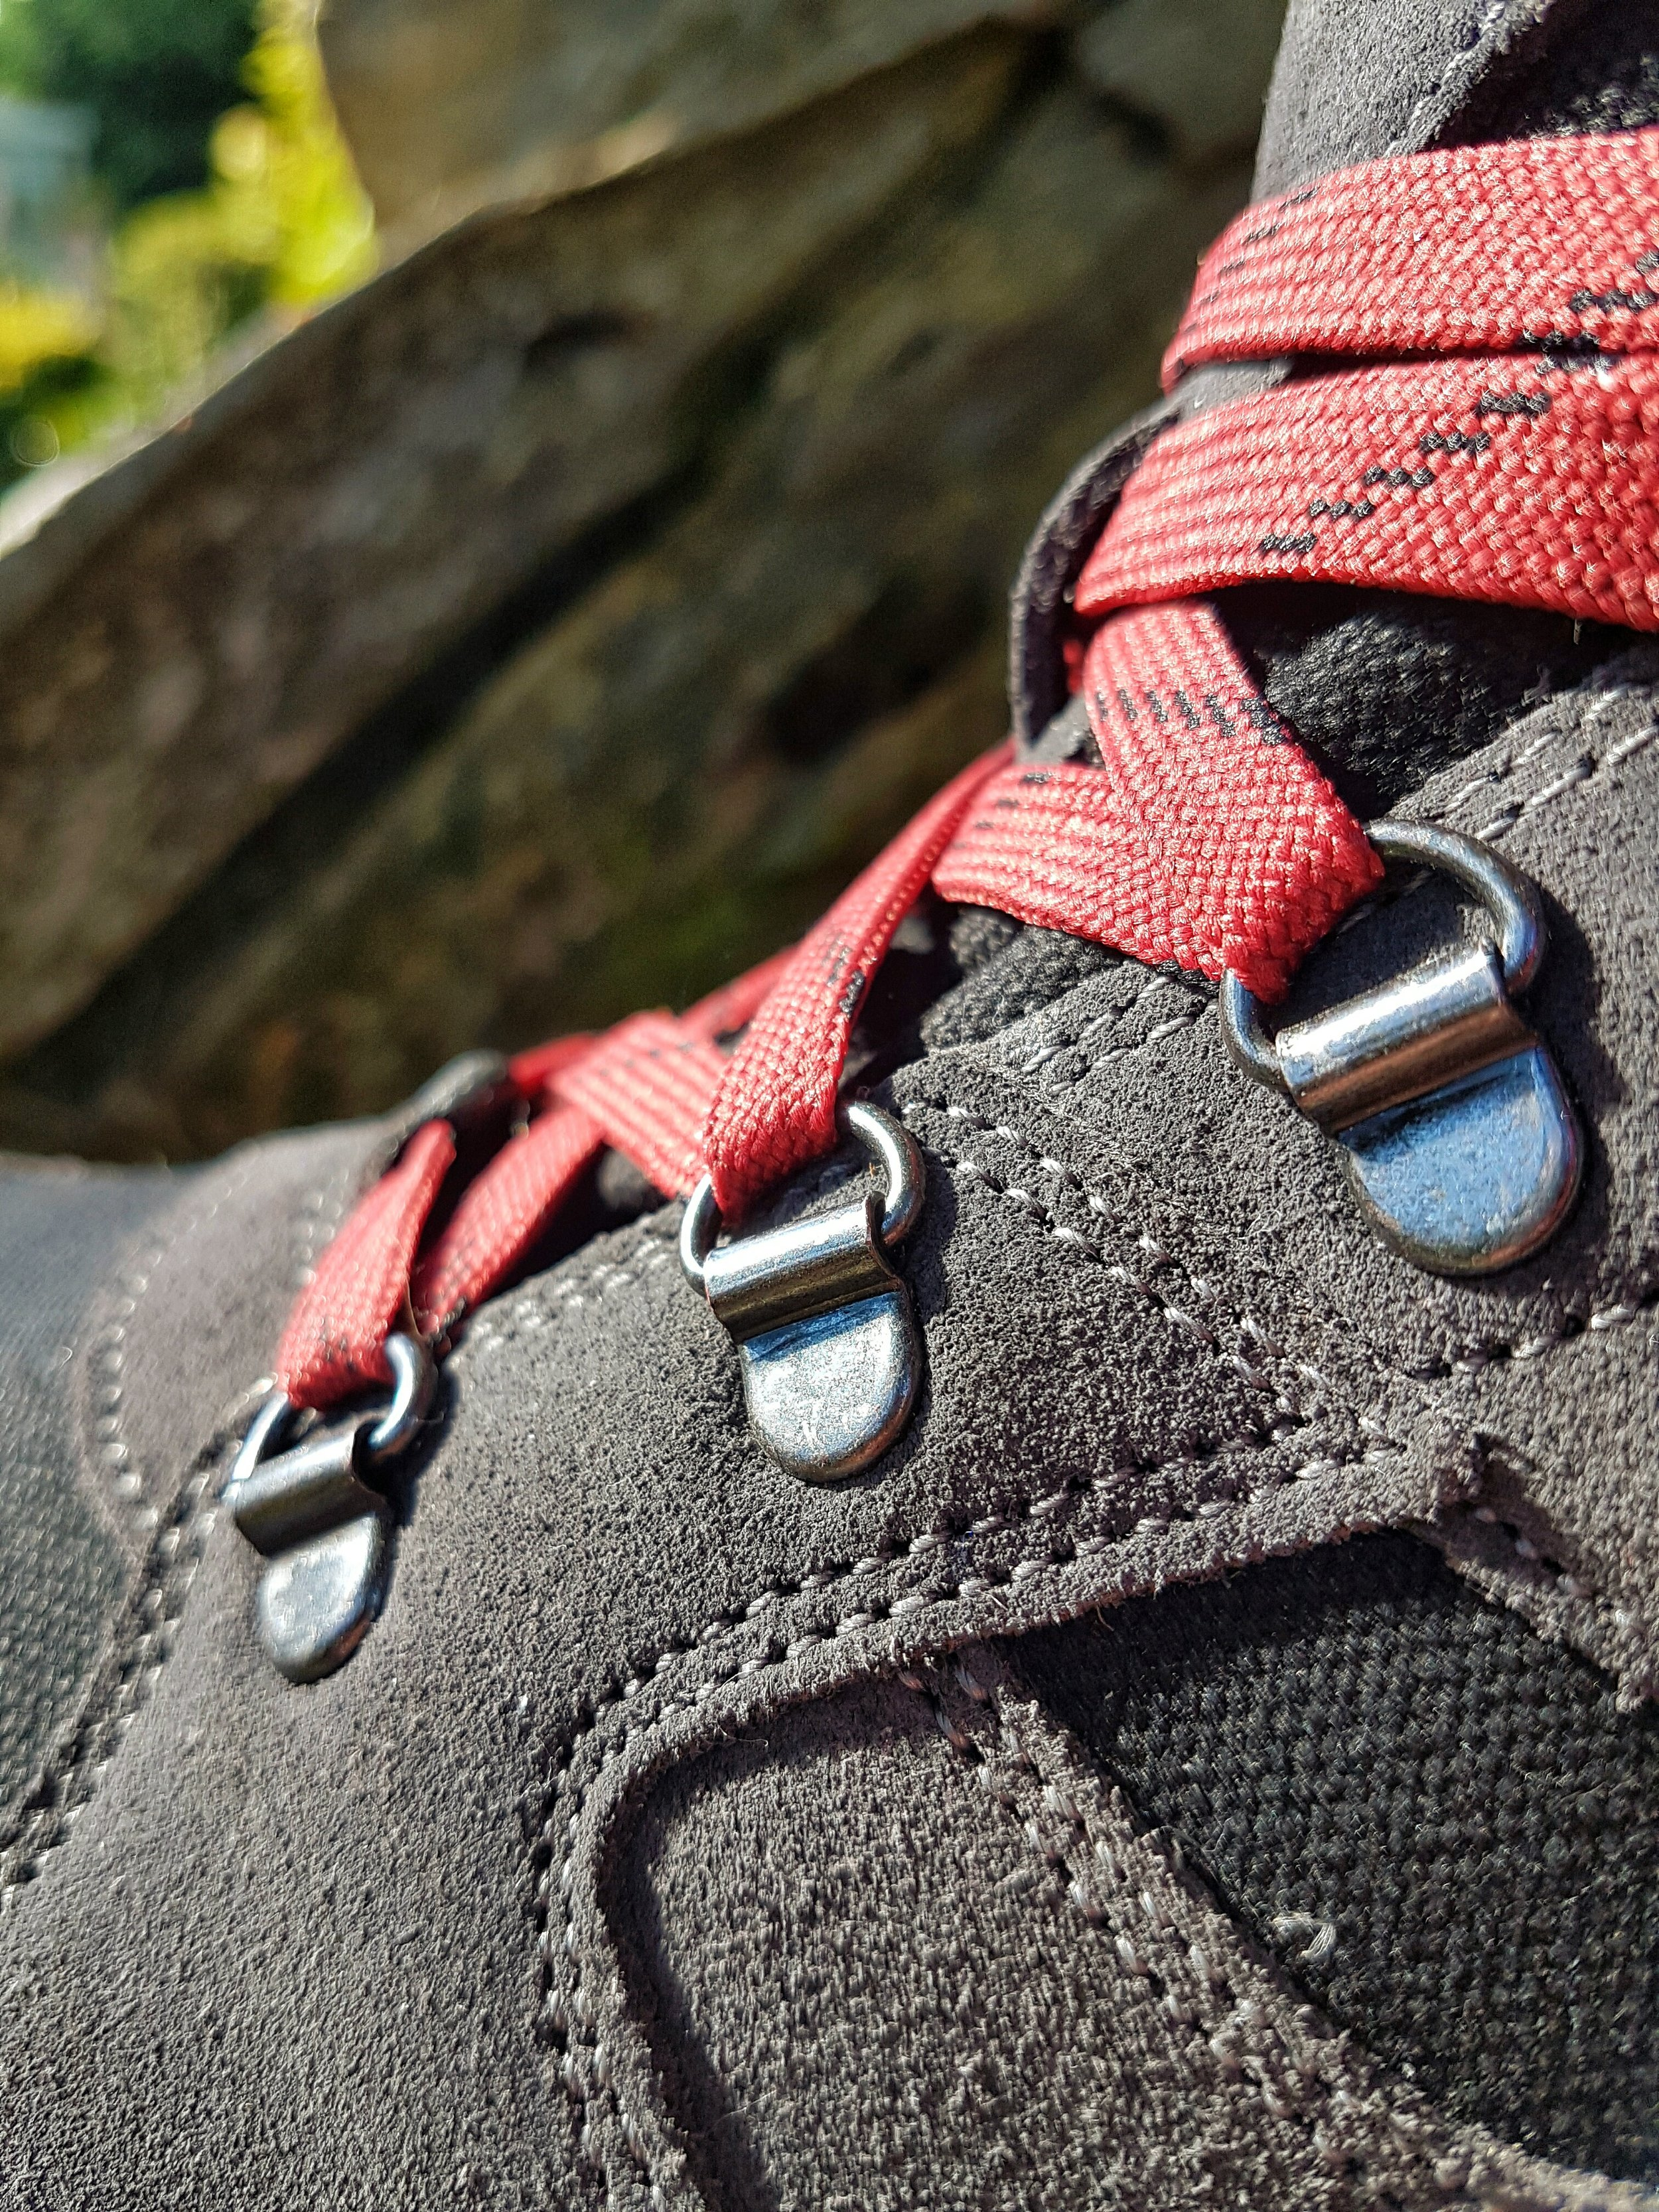 The attention to detail is clear. The stitching is immaculate and strong. The lace eyelets are metal, firmly positioned in place and really strong. After pulling the laces tight, these fixtures would take some moving.